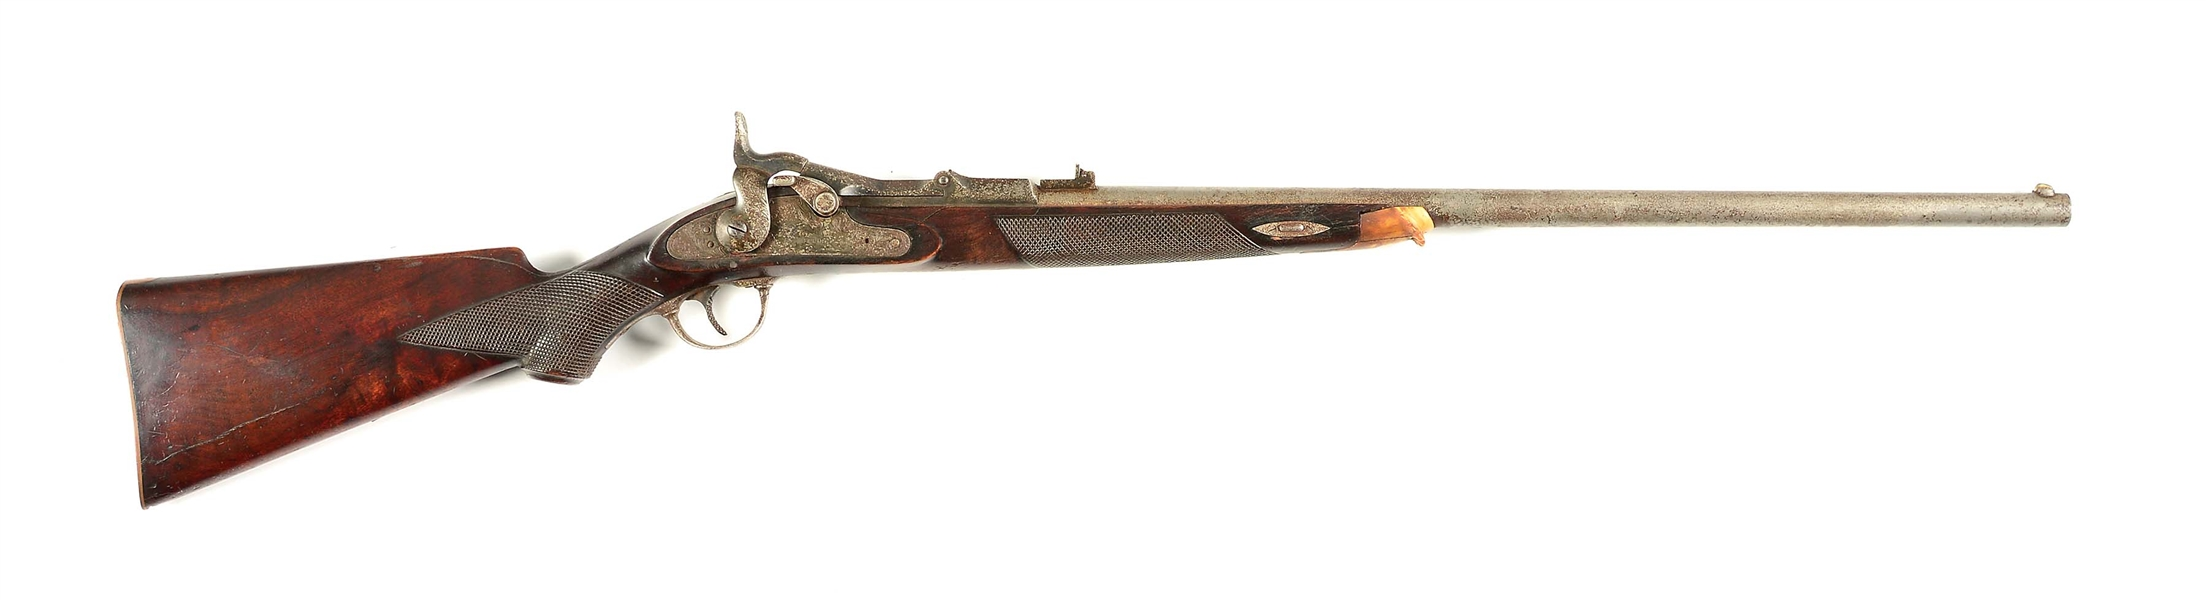 (A) SPRINGFIELD OFFICERS MODEL .45-70 RIFLE.